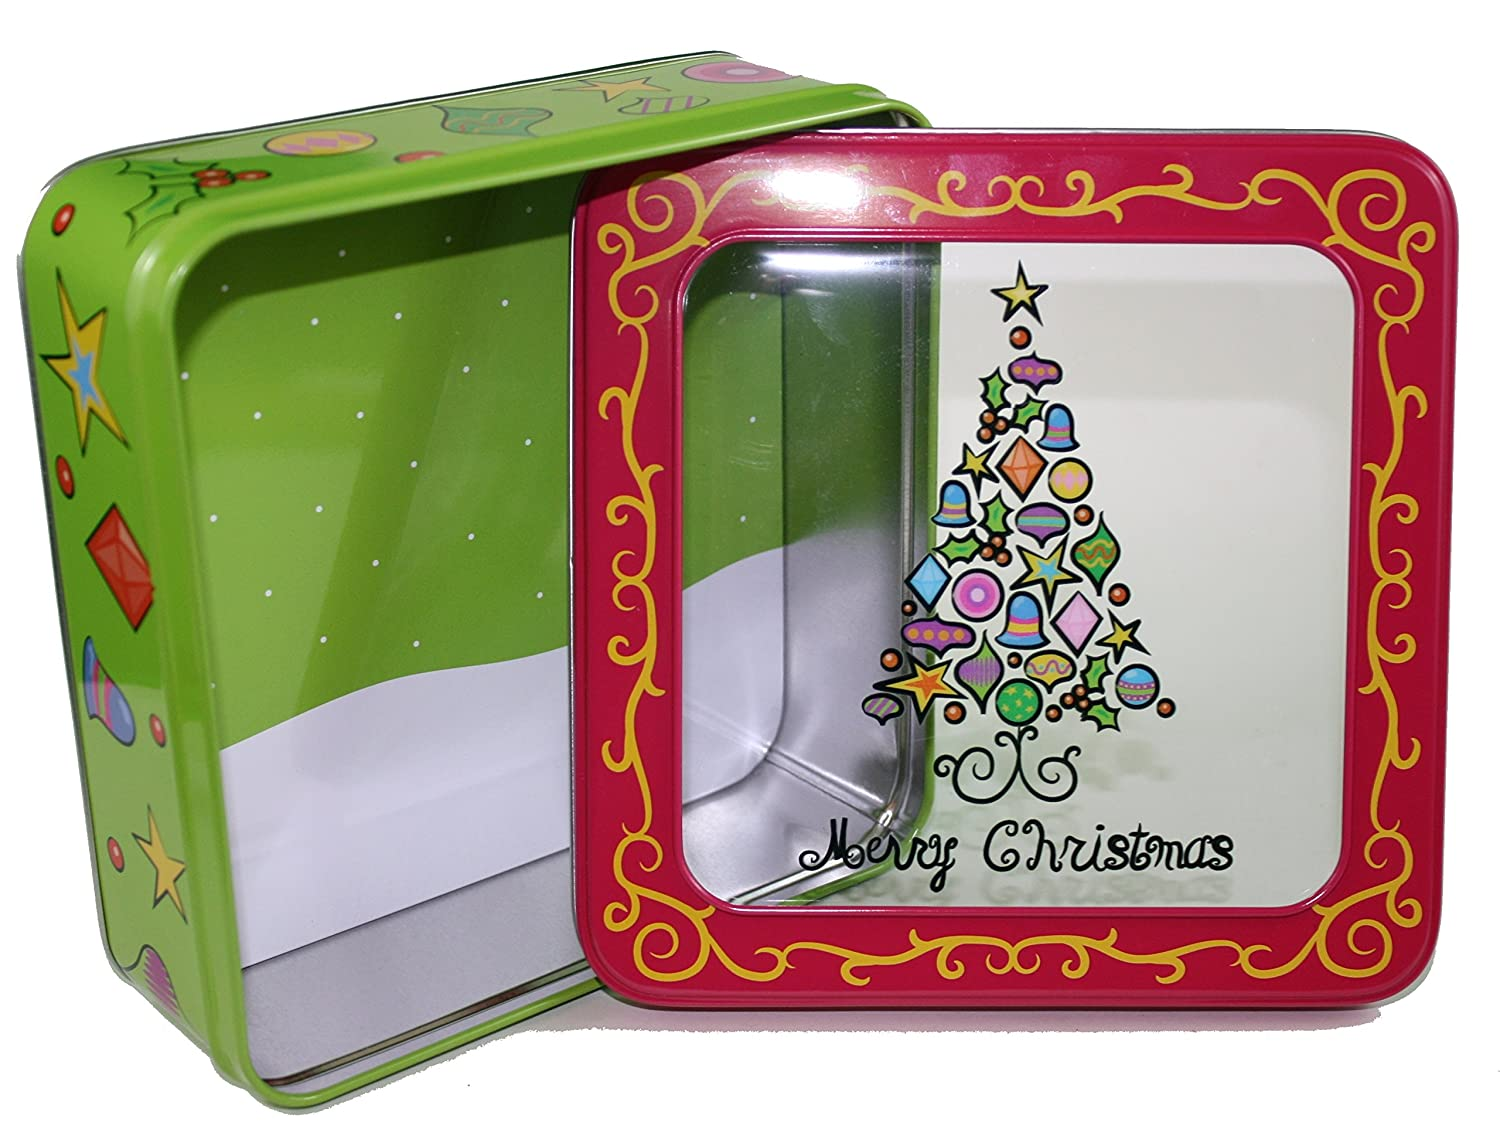 Square Christmas Metal Gift Box with Window (Green)